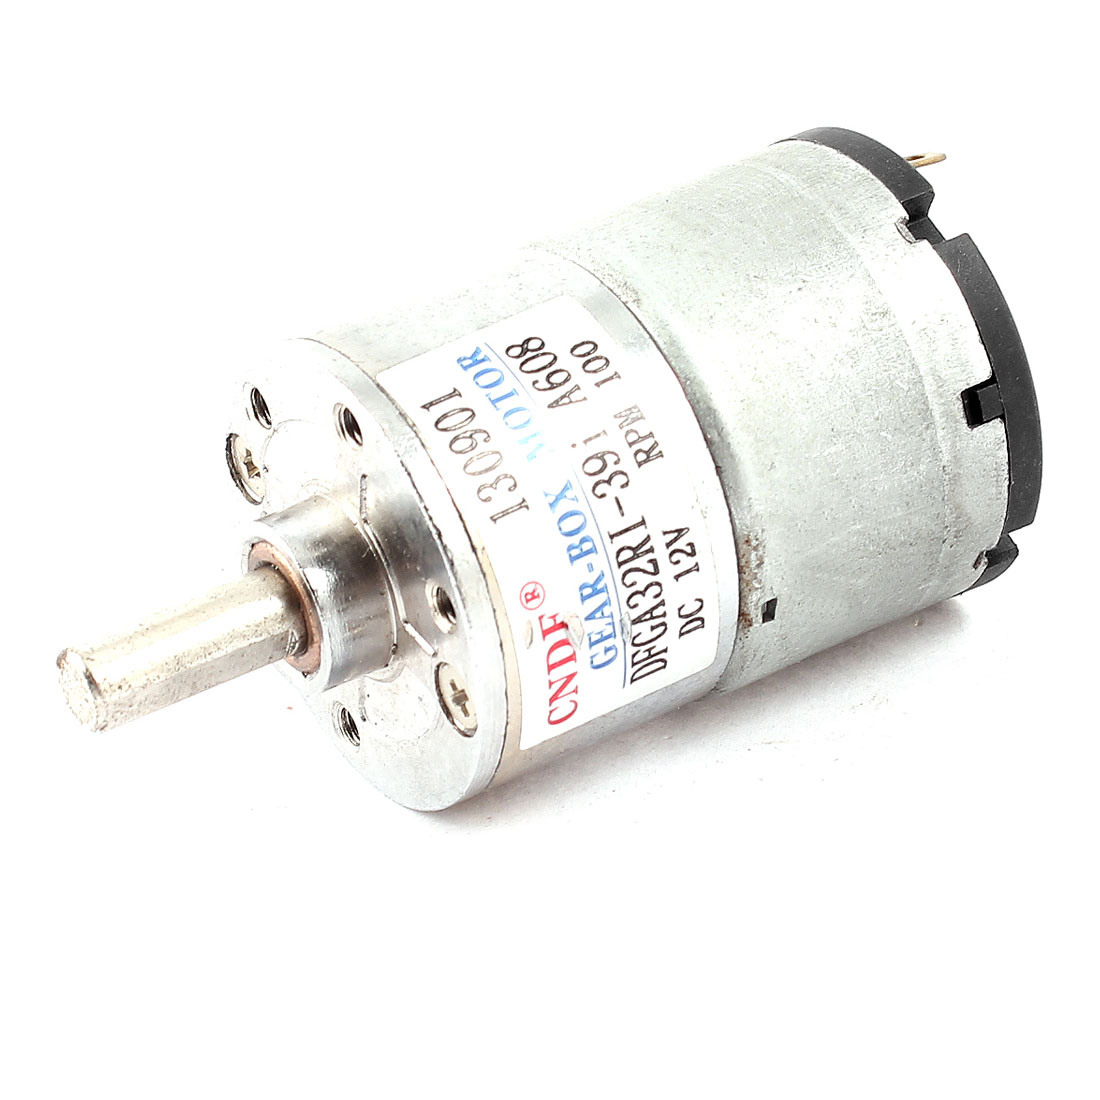 100RPM DC 12V Geared Box Electric Cylindrical Speed Reduce Motor